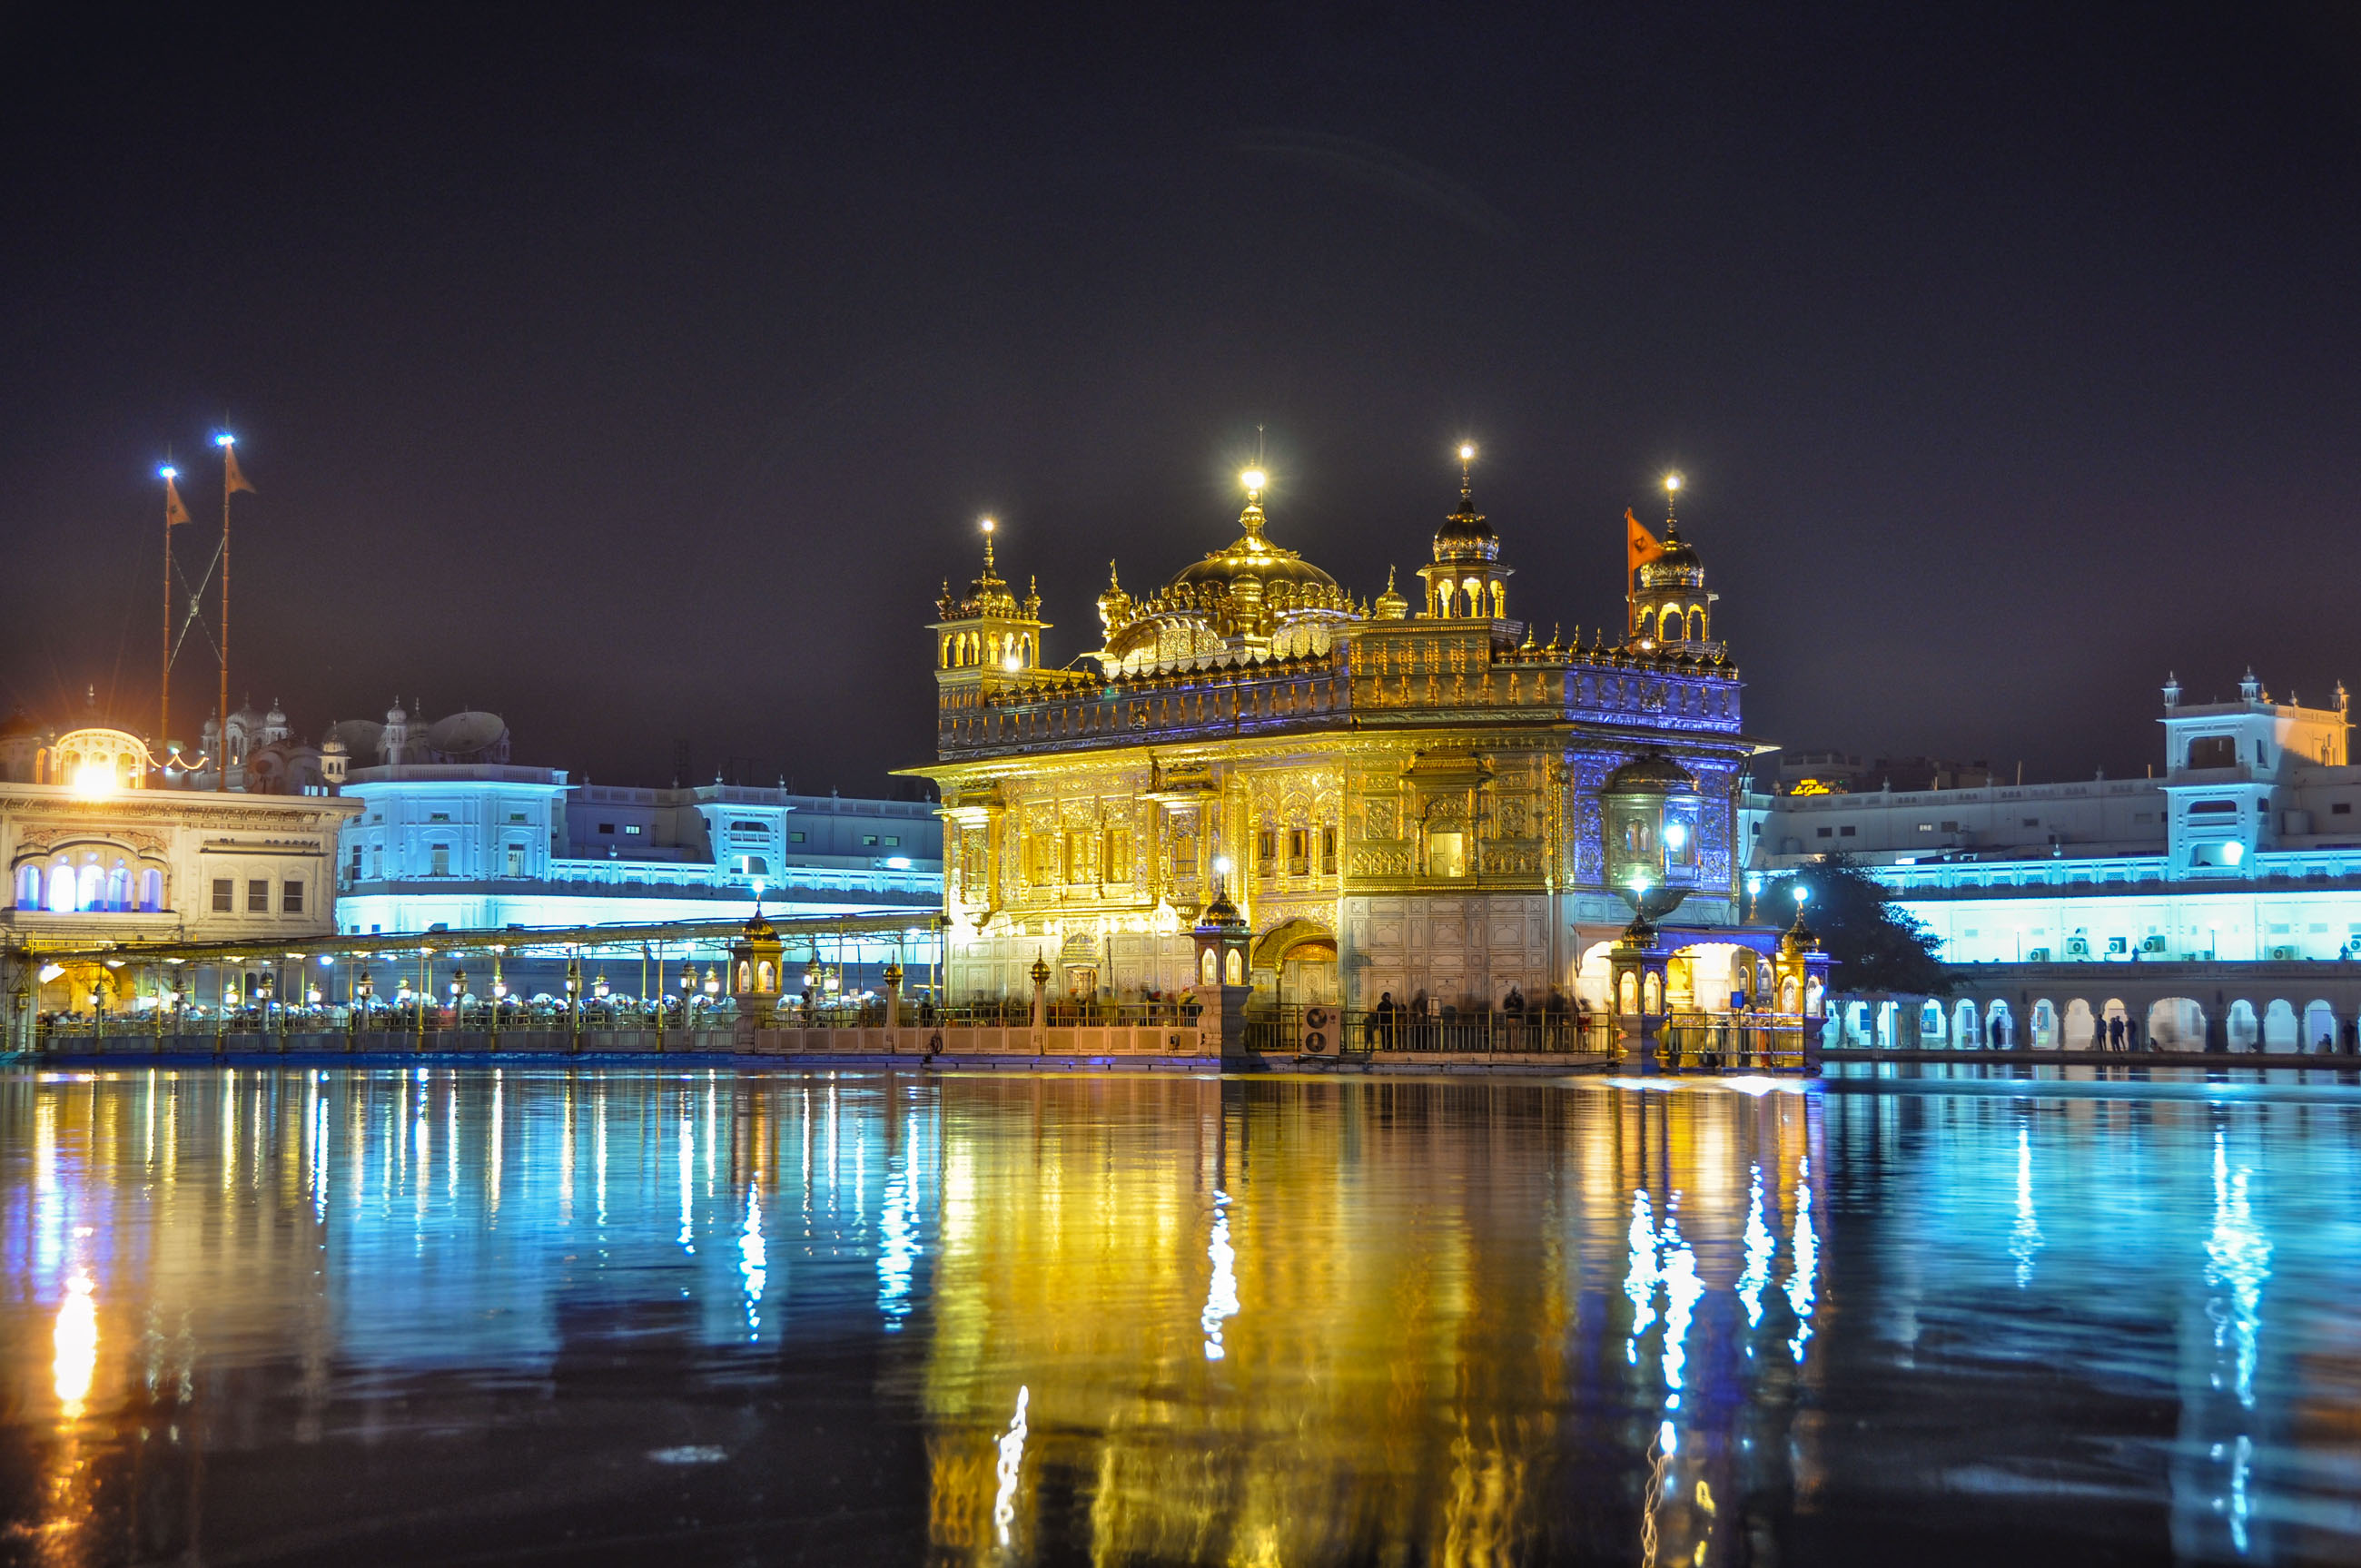 https://bubo.sk/uploads/galleries/4920/tomas_kubus_india_amritsar_dsc_0278.jpg